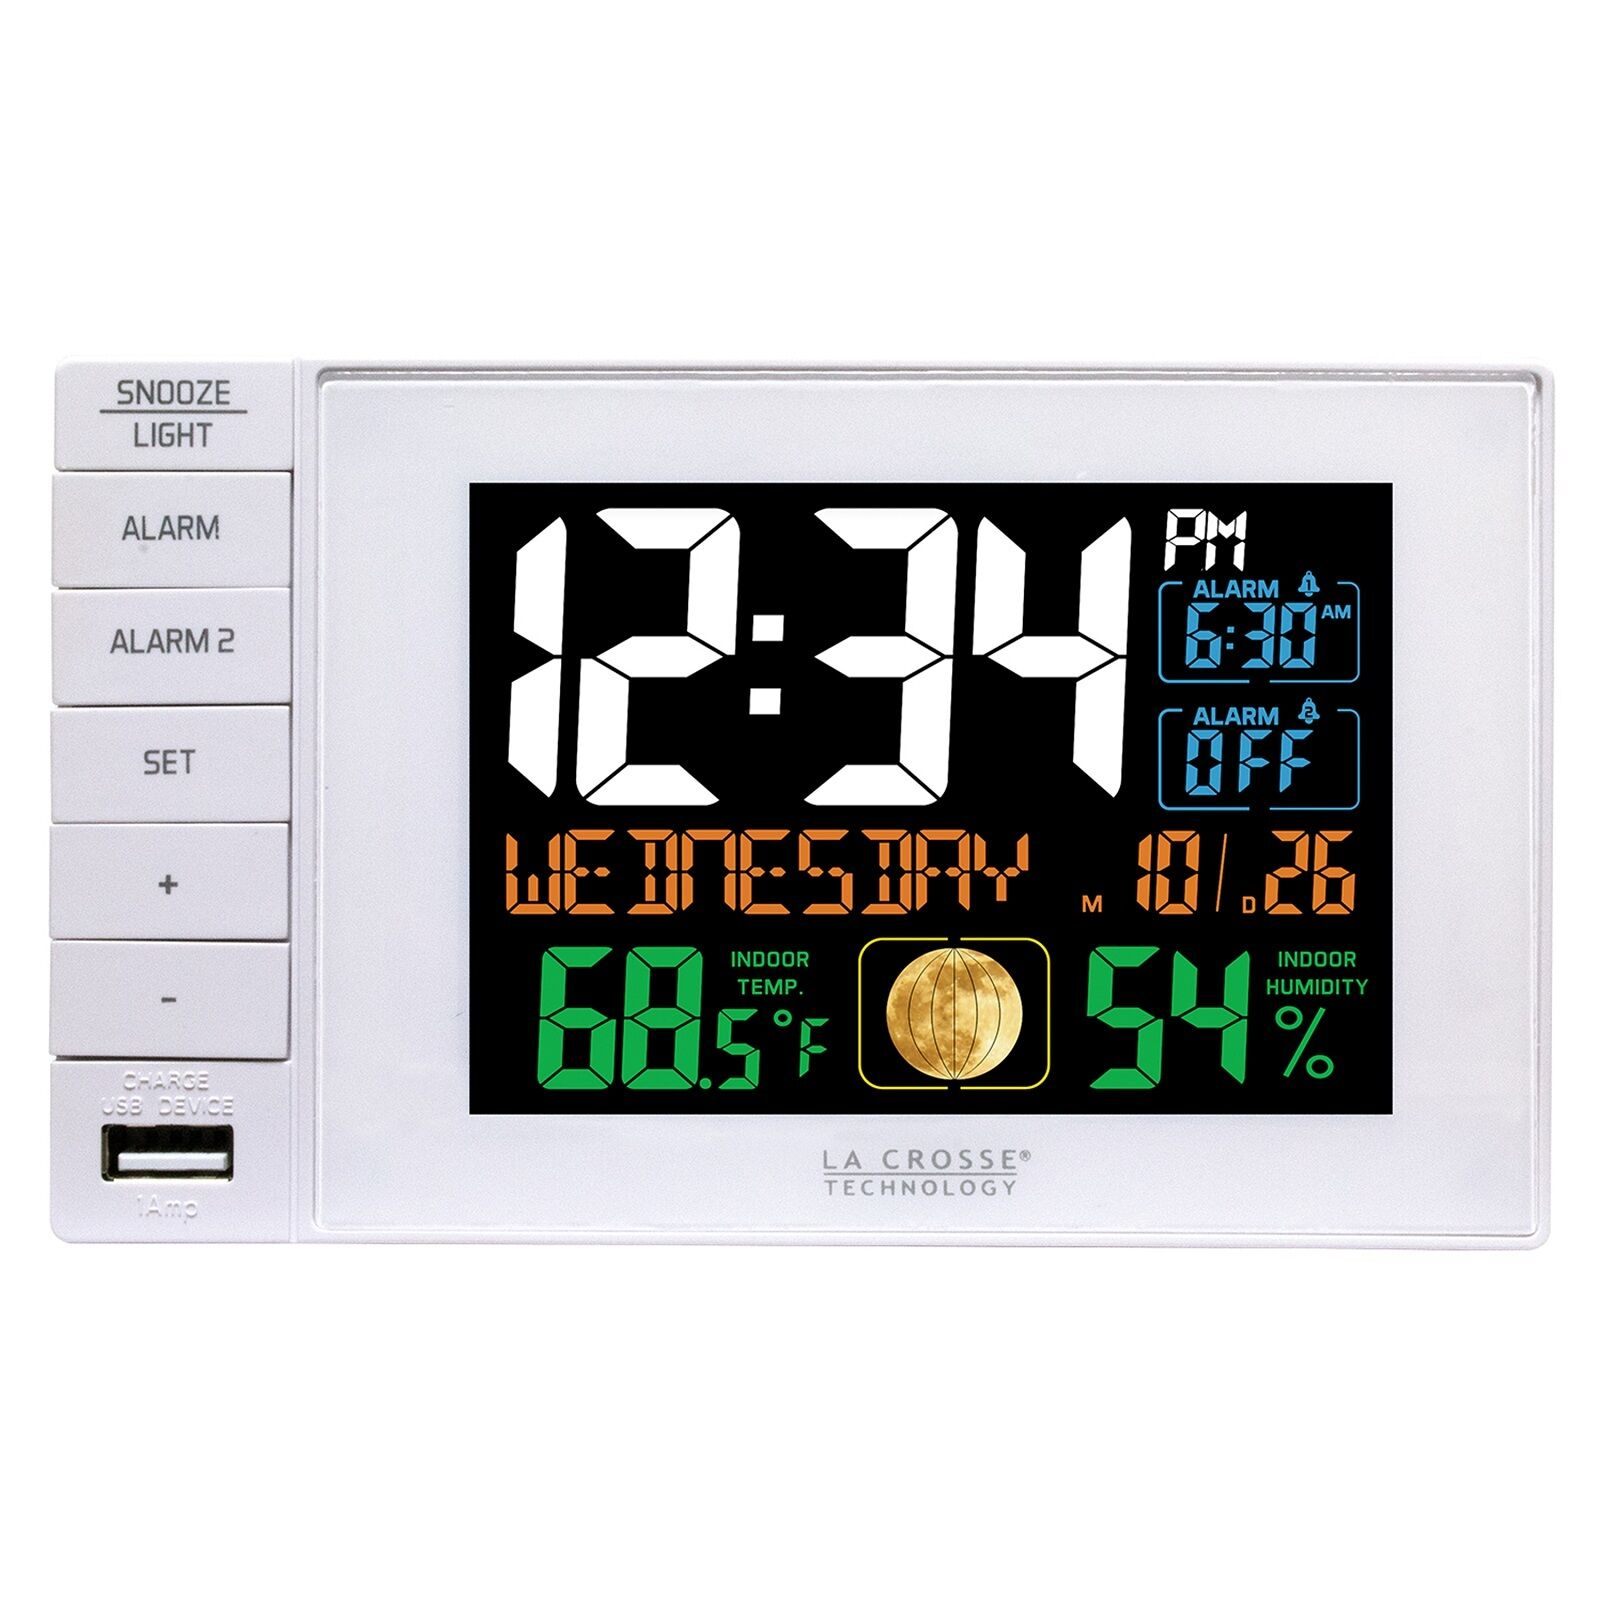 C87061 La Crosse Technology Dual Alarm Clock with USB Charging Port Refurbished